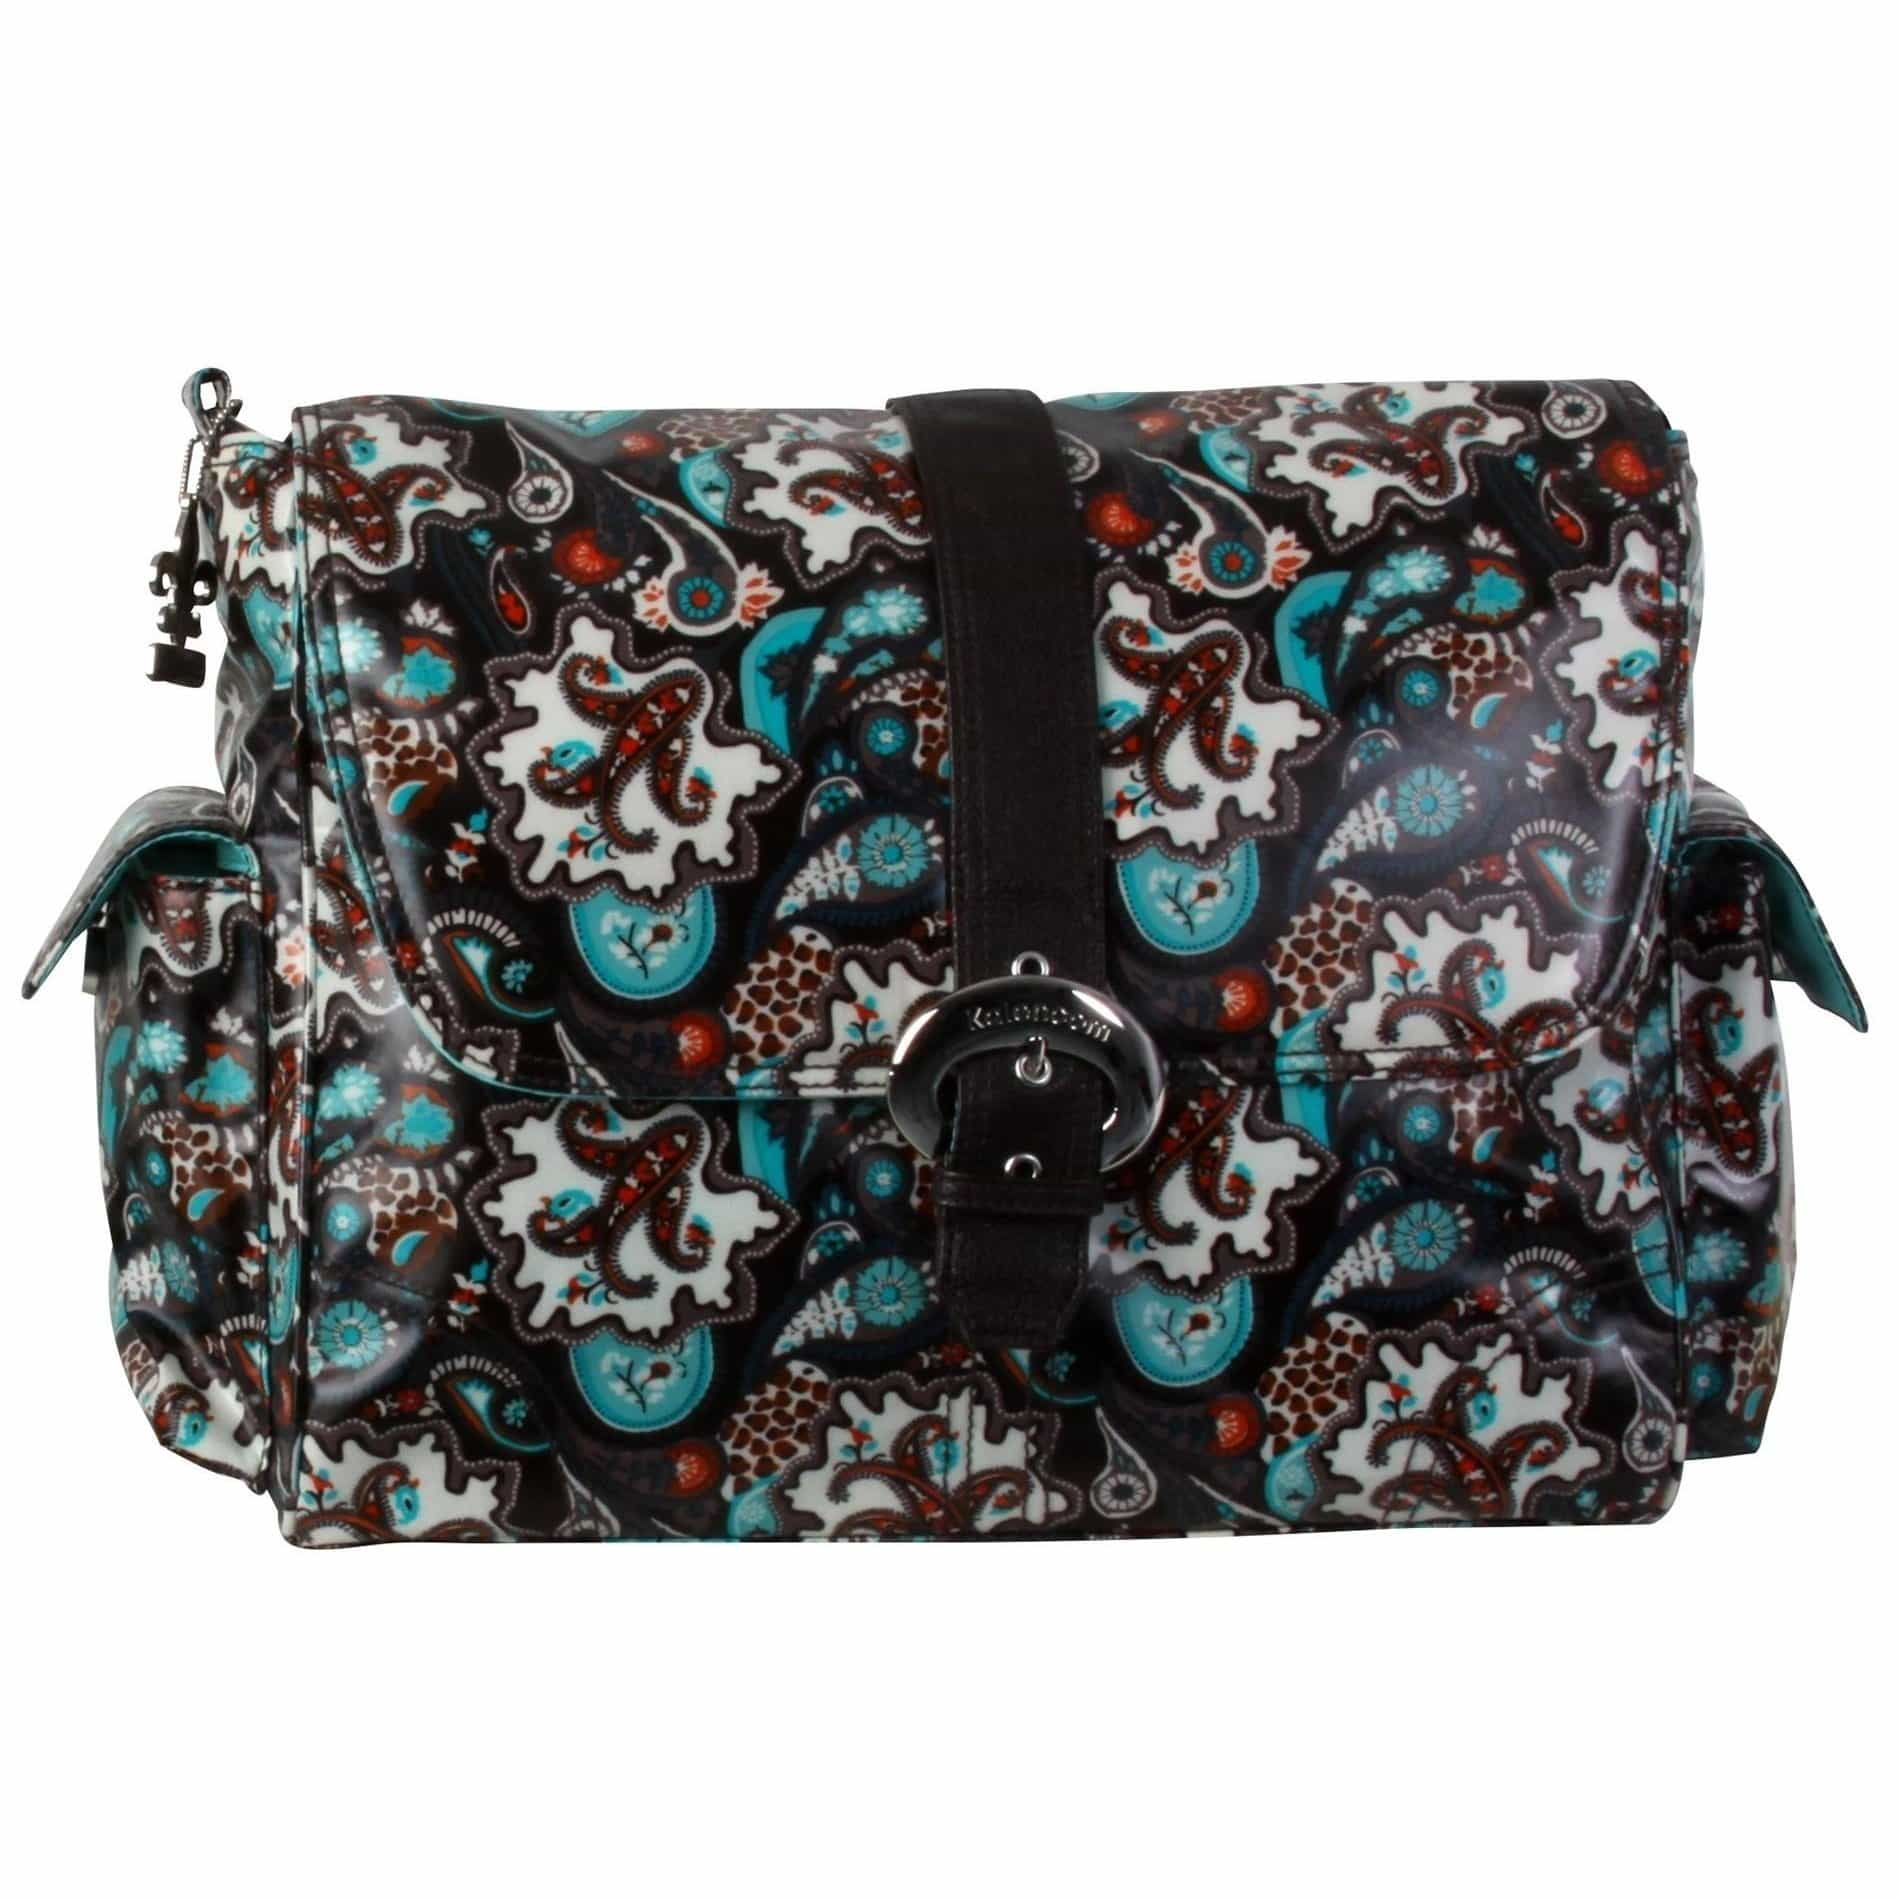 Safari Paisley Matte Coated Buckle Diaper Bag | Style 2960 - Kalencom-Diaper Bags-Jack and Jill Boutique